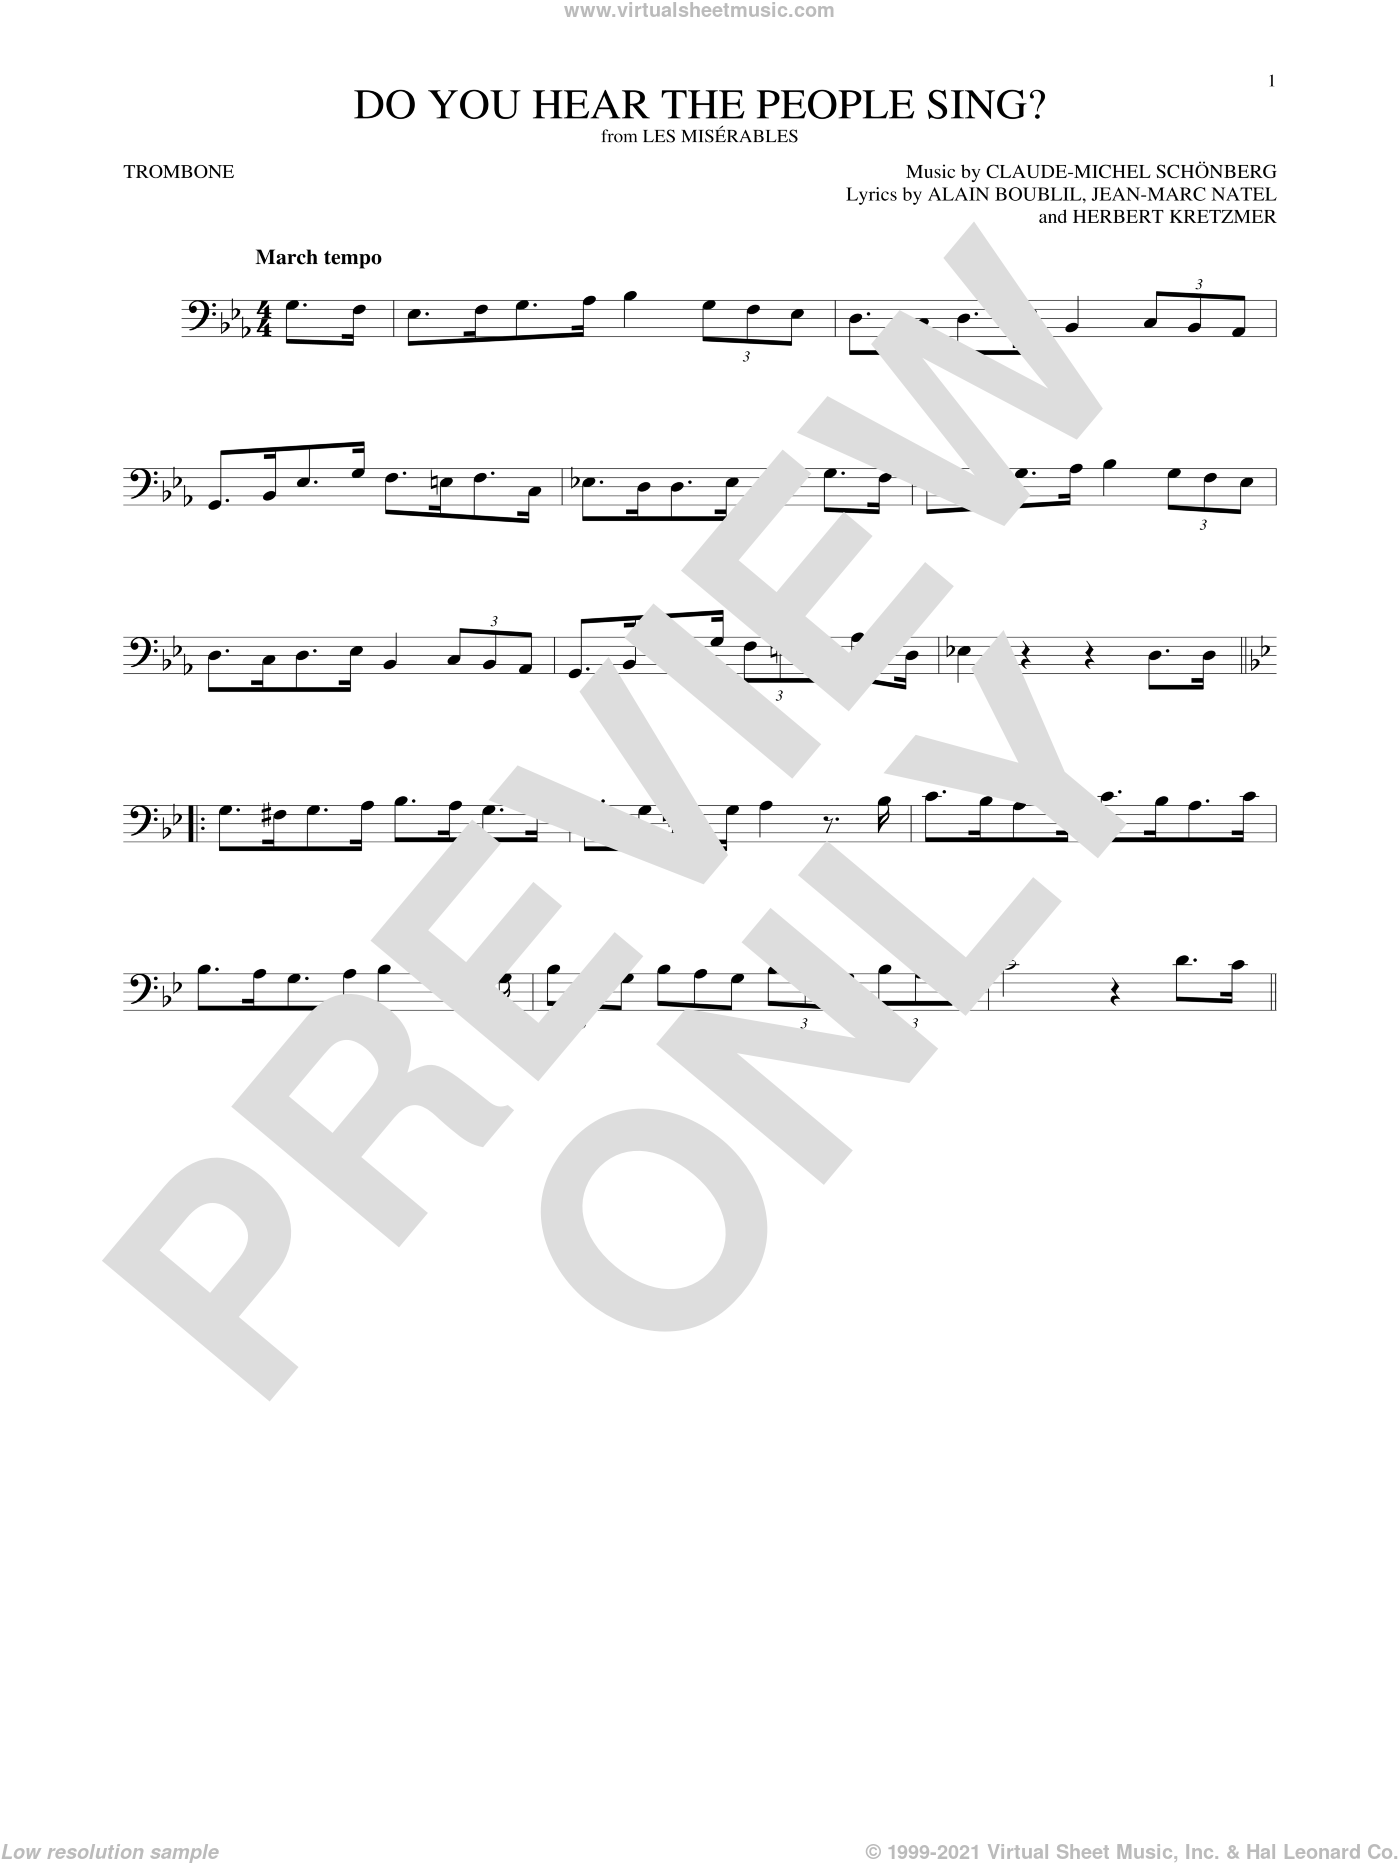 Do You Hear The People Sing? sheet music for trombone solo by Alain Boublil, Claude-Michel Schonberg, Herbert Kretzmer and Jean-Marc Natel, intermediate skill level